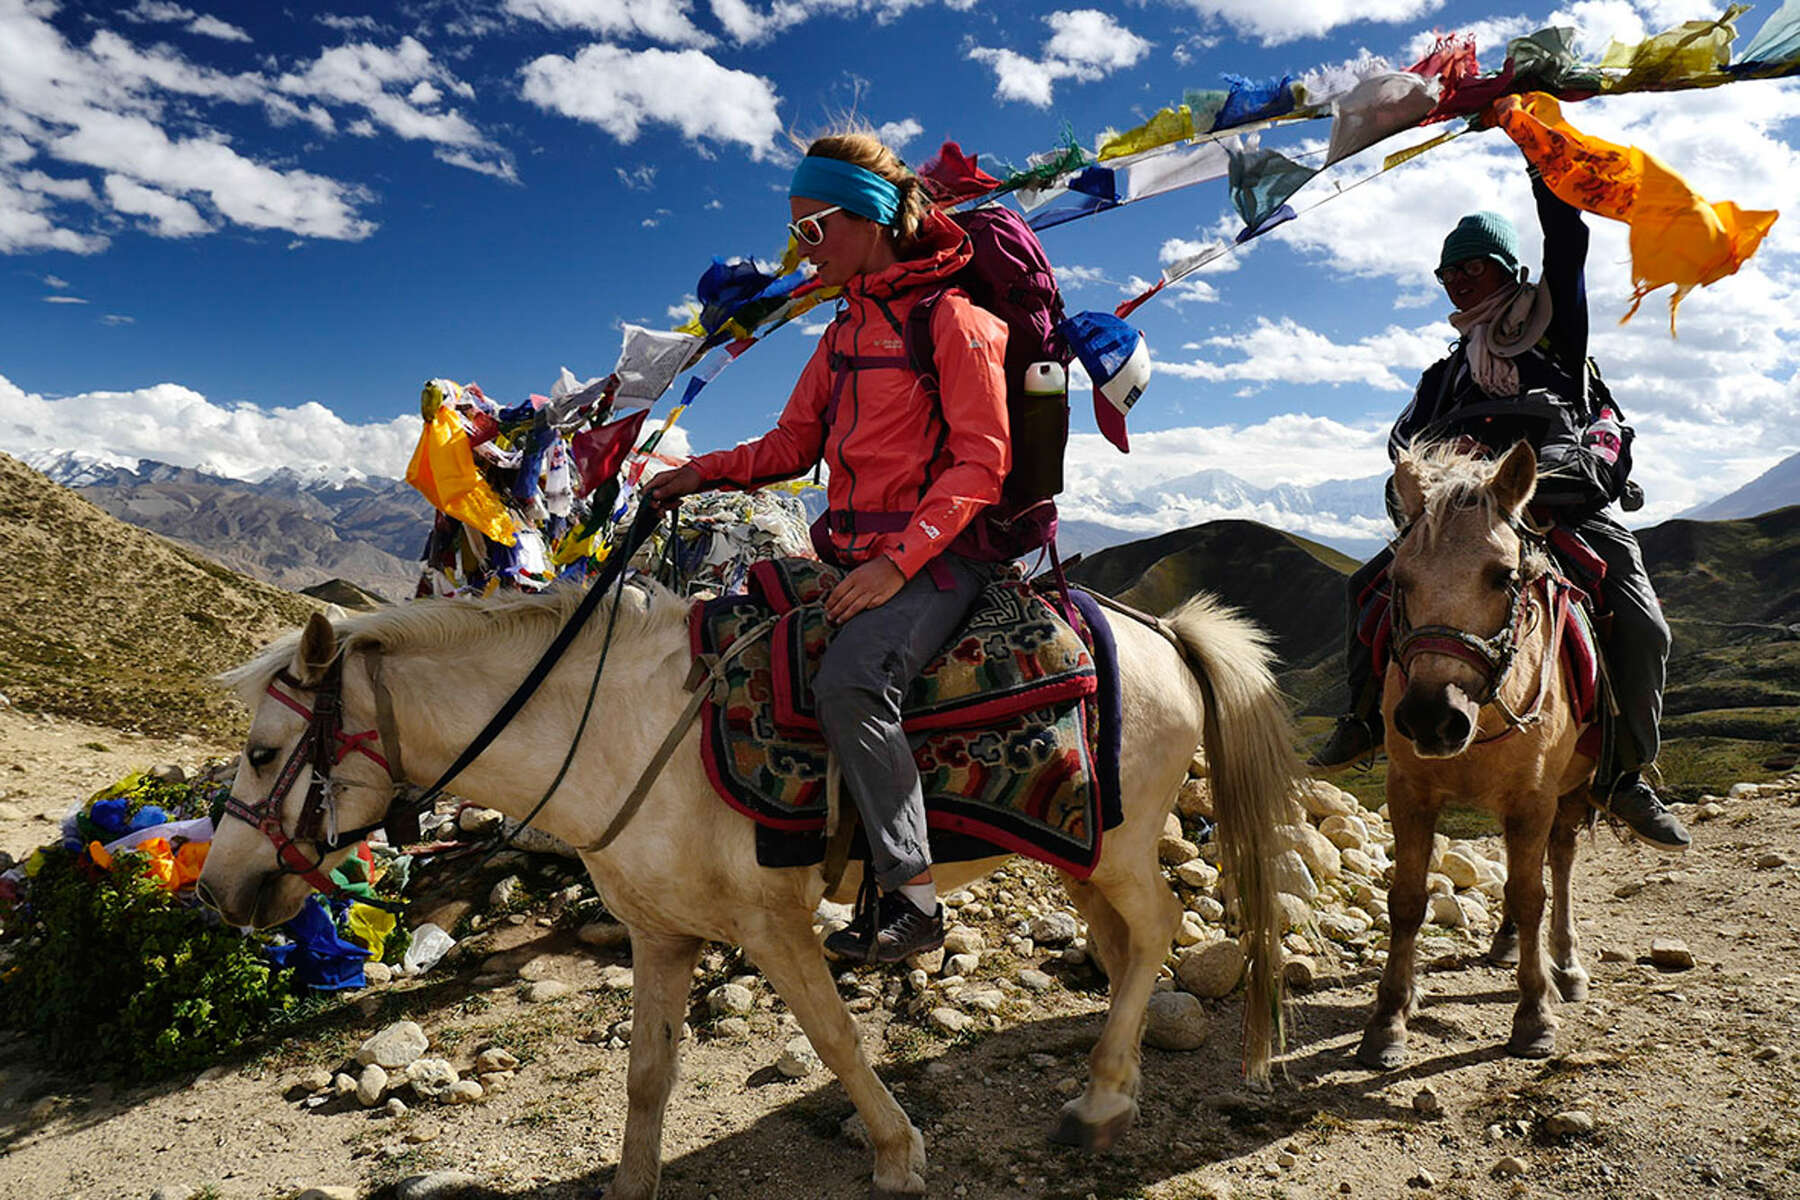 Riders on horseback in Nepal